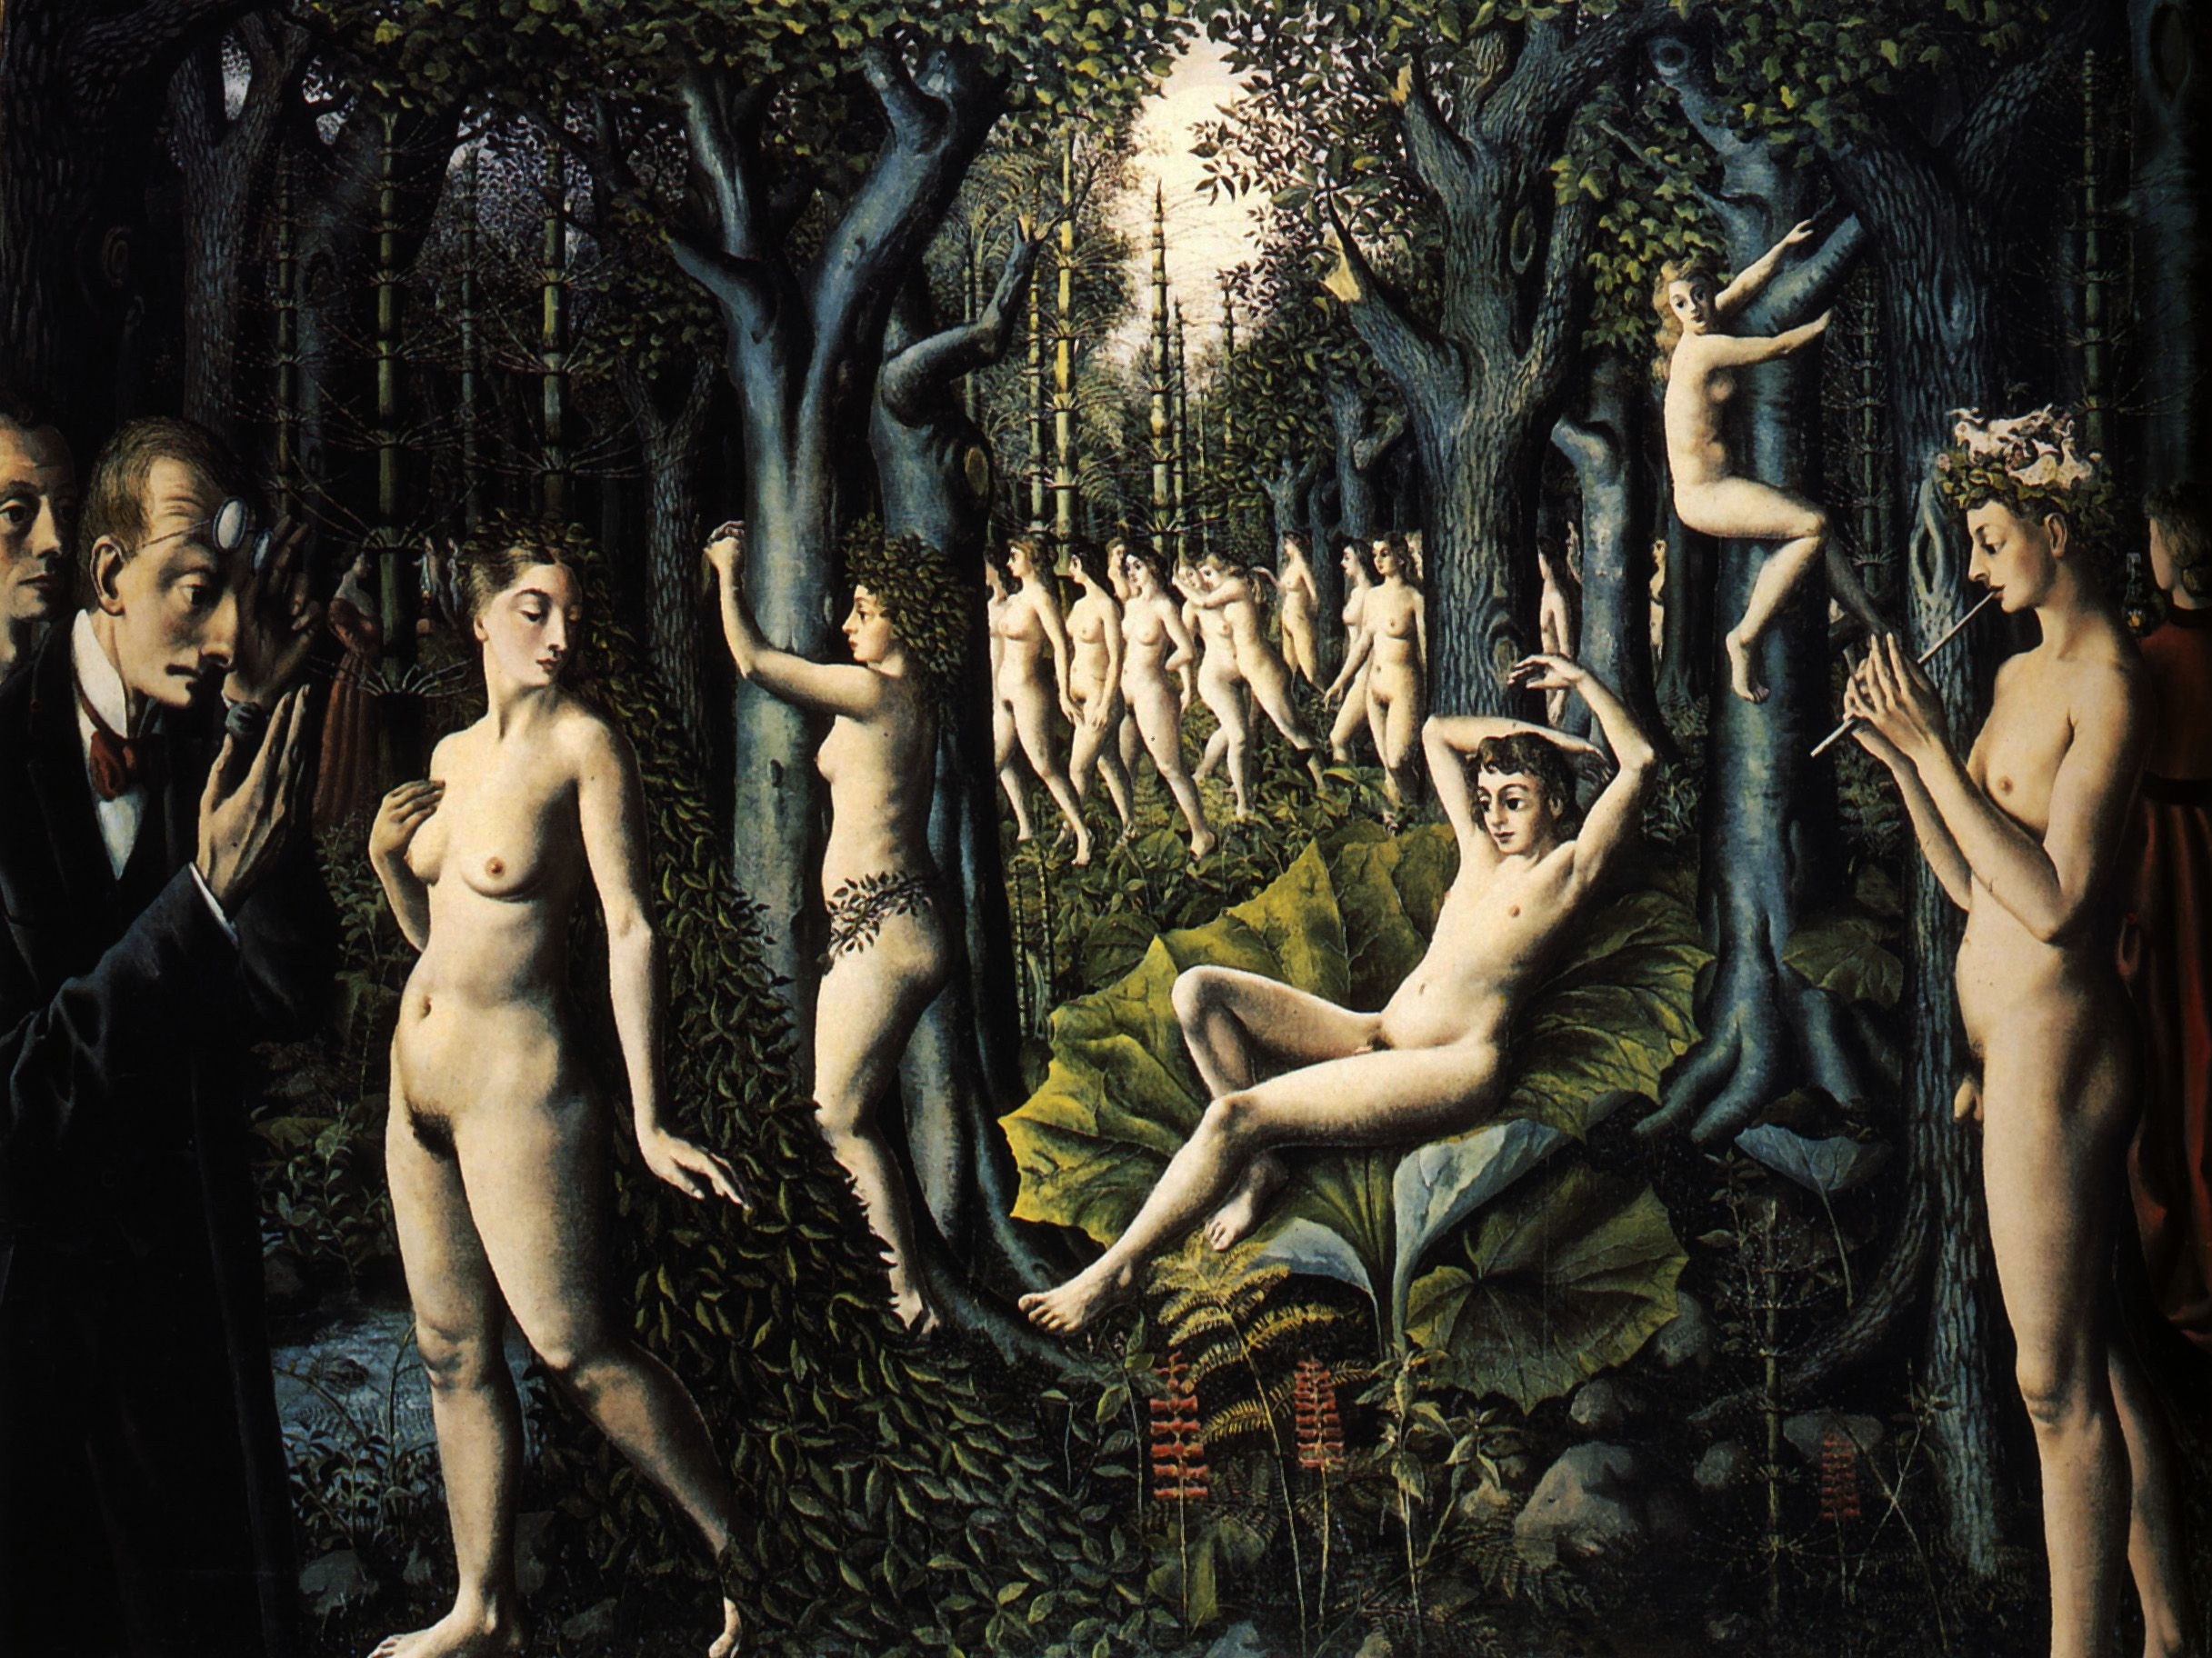 paul delvaux the awakening of the forest art paul paul delvaux the awakening of the forest 1939 art paul delvaux the forest paul delvaux and the o jays